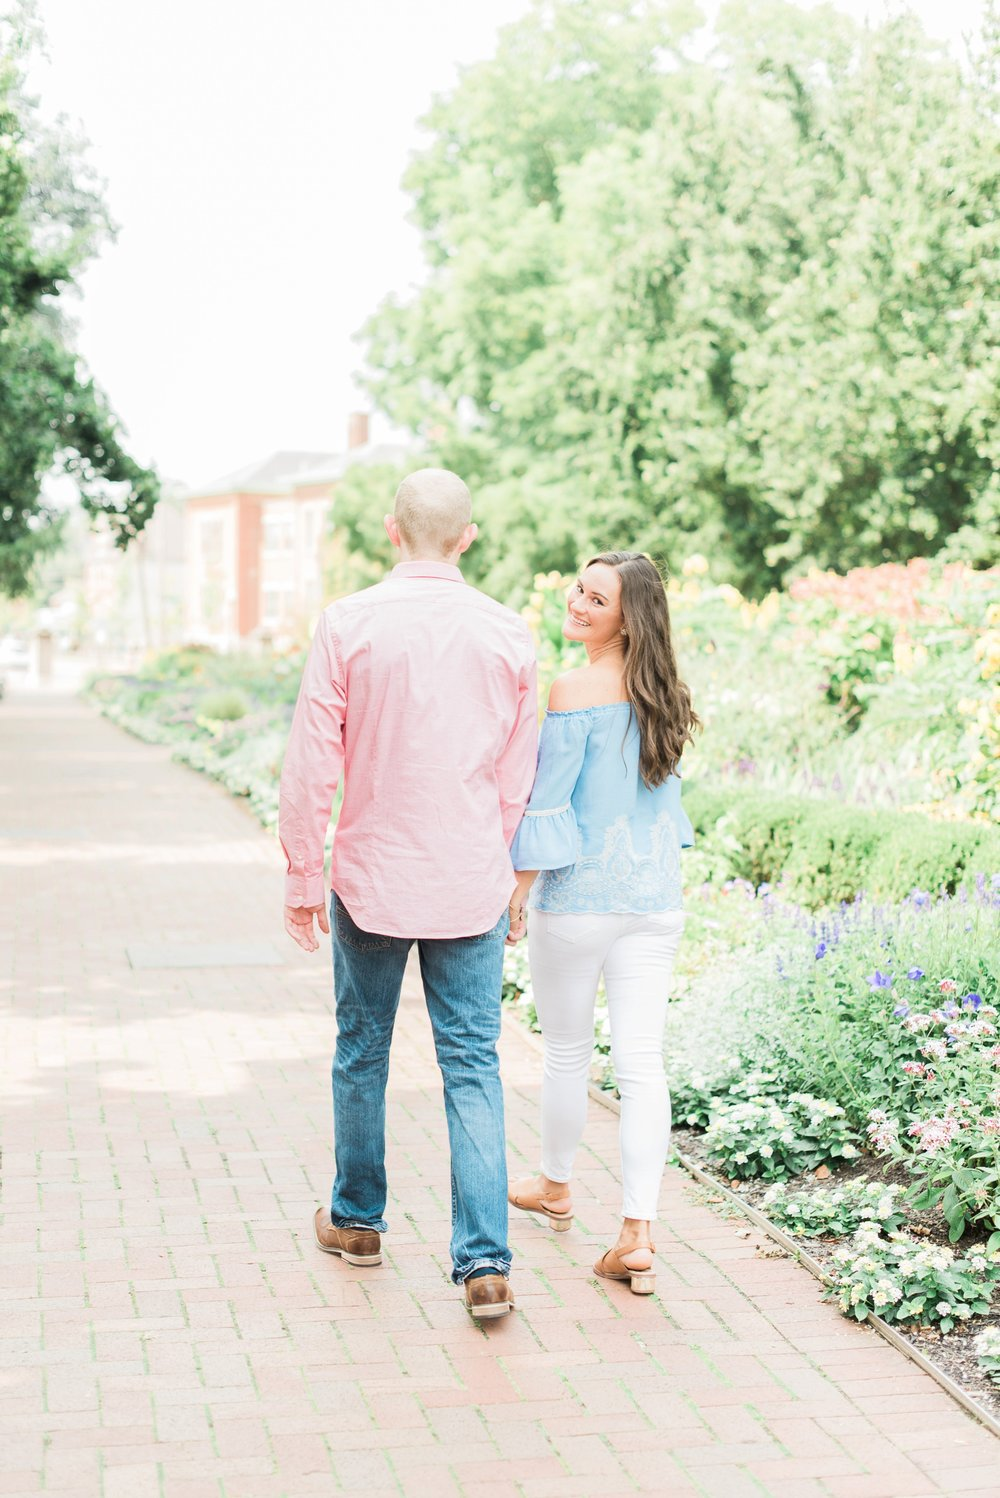 german-village-engagement-columbus-ohio-photographer-morgan-alex-18.jpg